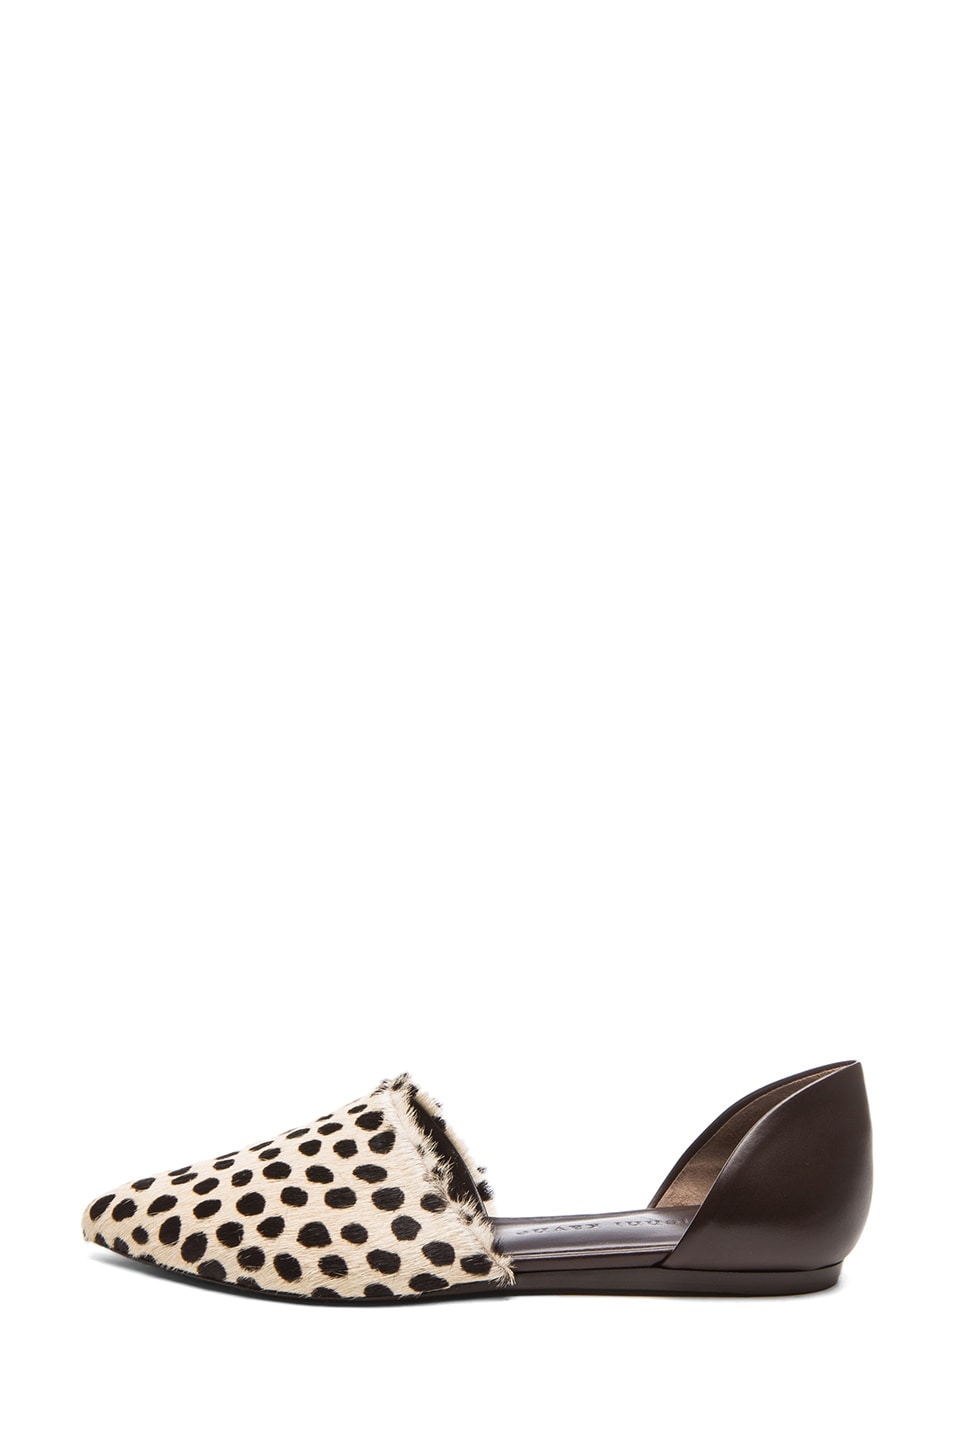 Image 1 of Jenni Kayne D'orsay Calf Hair & Leather Flats in Cheetah &